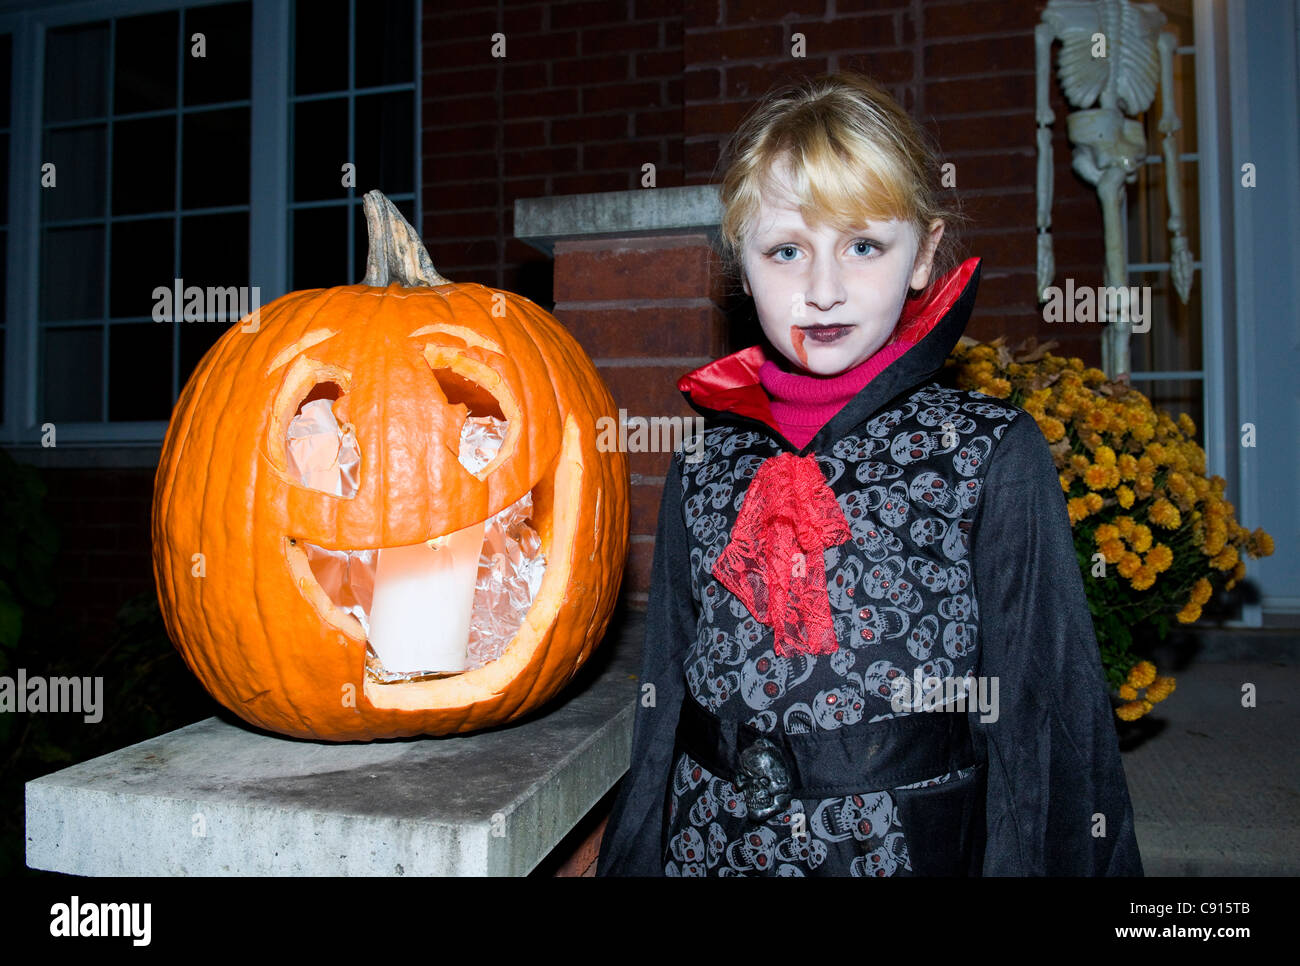 Girl with pumpkin at Halloween time Montreal canada - Stock Image